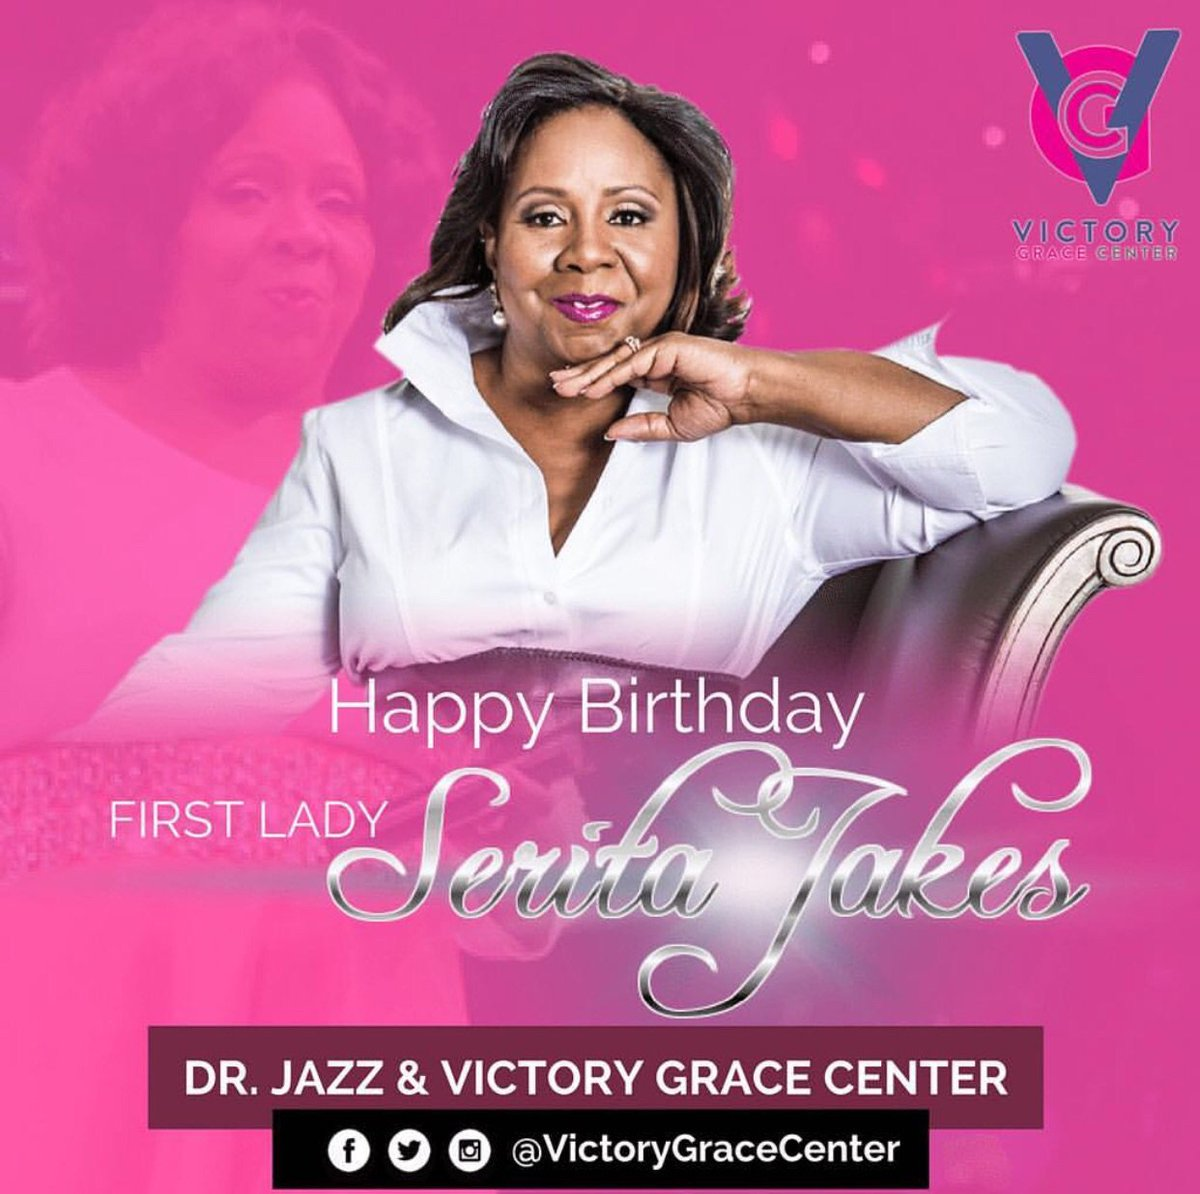 Dr. Jazz and #VGC would like to wish a very Happy Birthday to First Lady Serita Jakes! @iamdrjazz @FirstLadyJakes<br>http://pic.twitter.com/5a0KlJkG1V